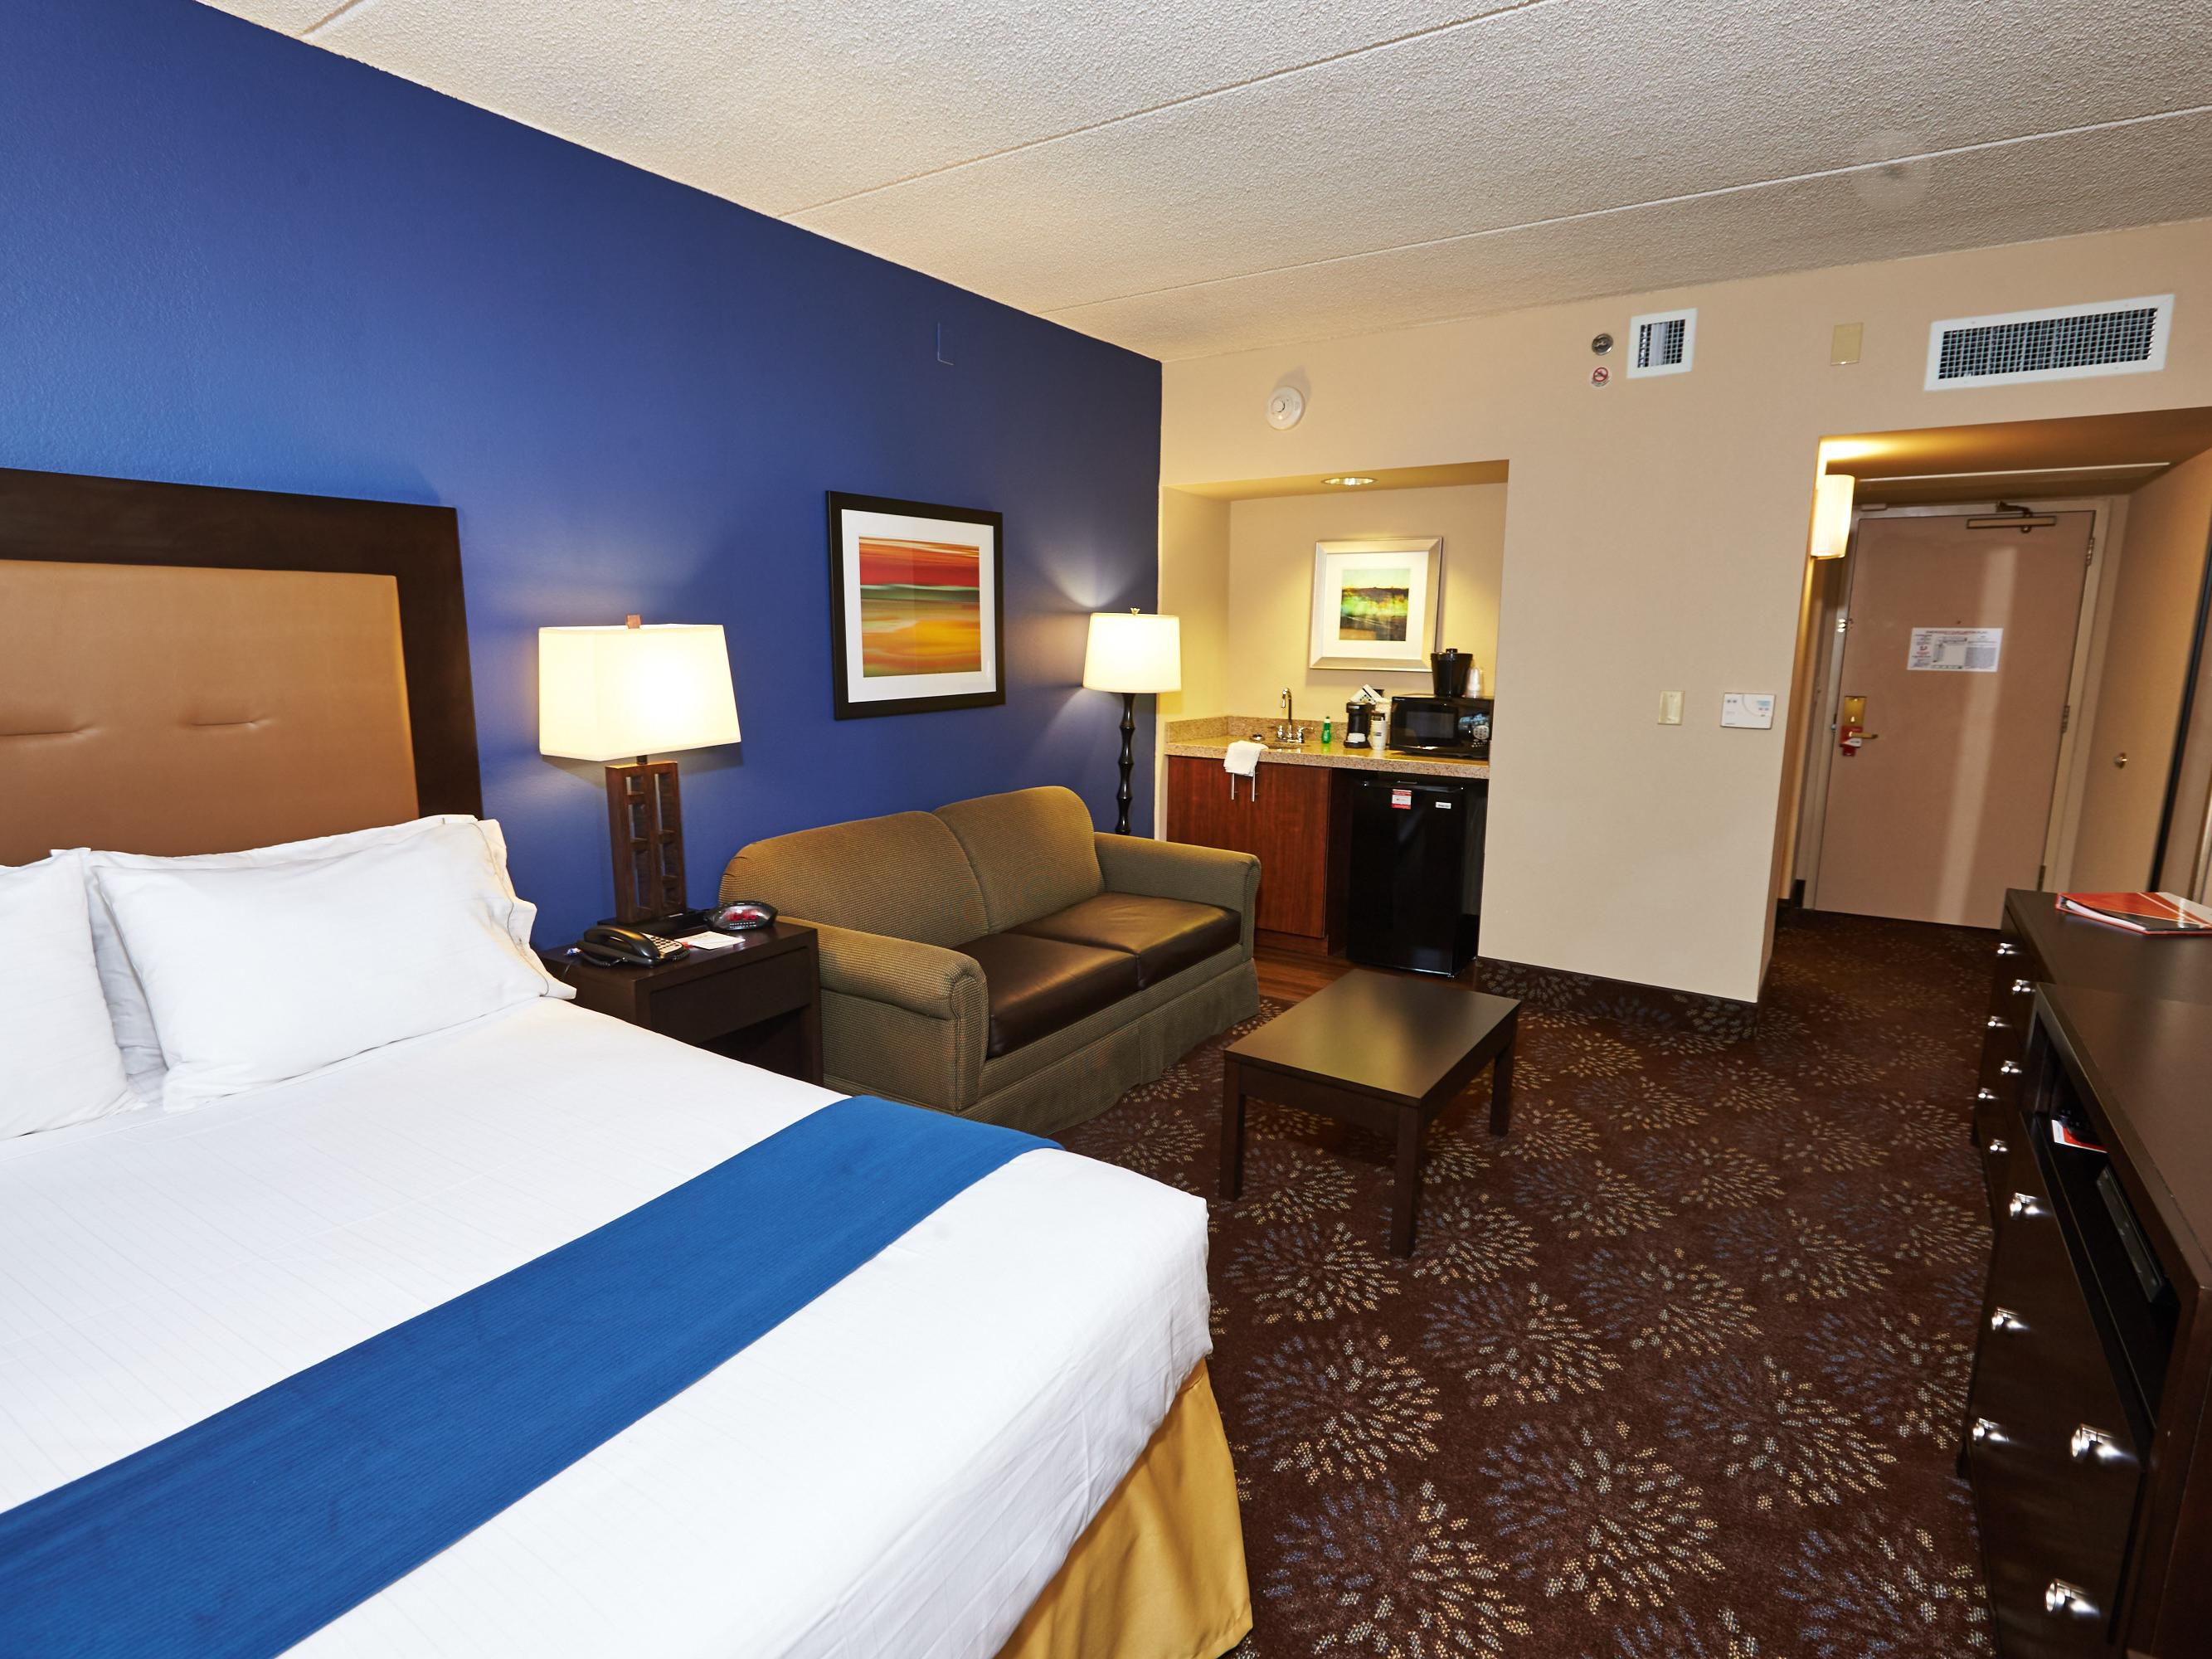 Rooms And Rates For Ihg Army Hotels Powless House At Ft Sam Houston